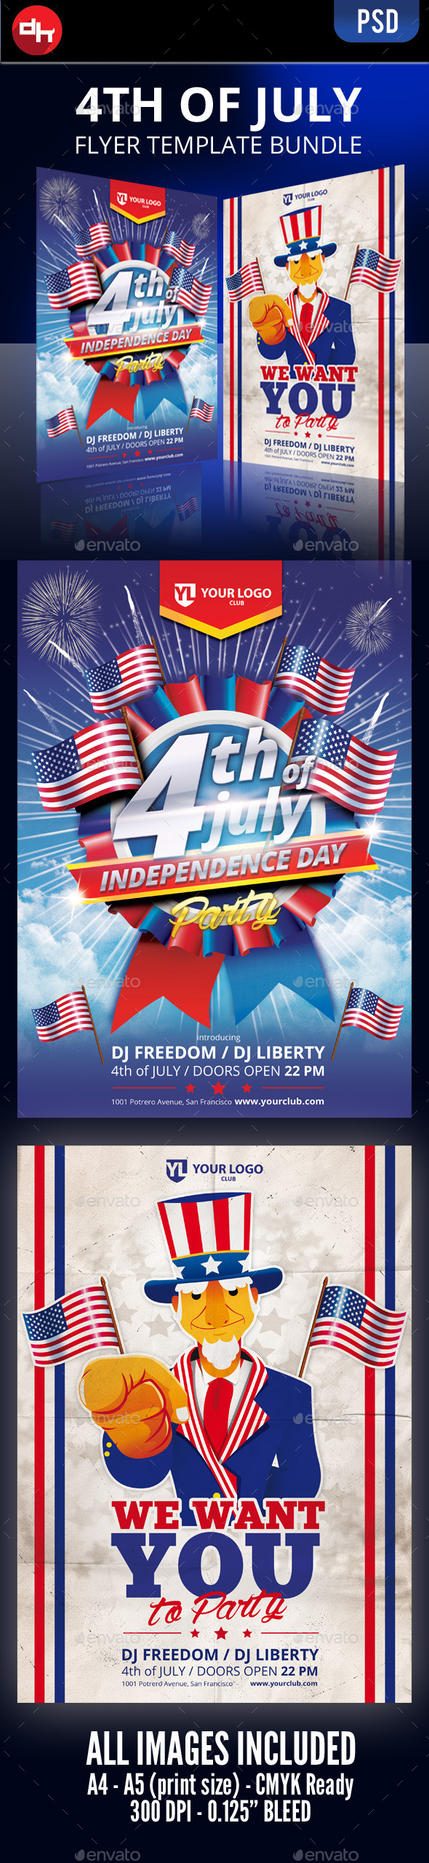 4th of July - Flyer Bundle by doghead